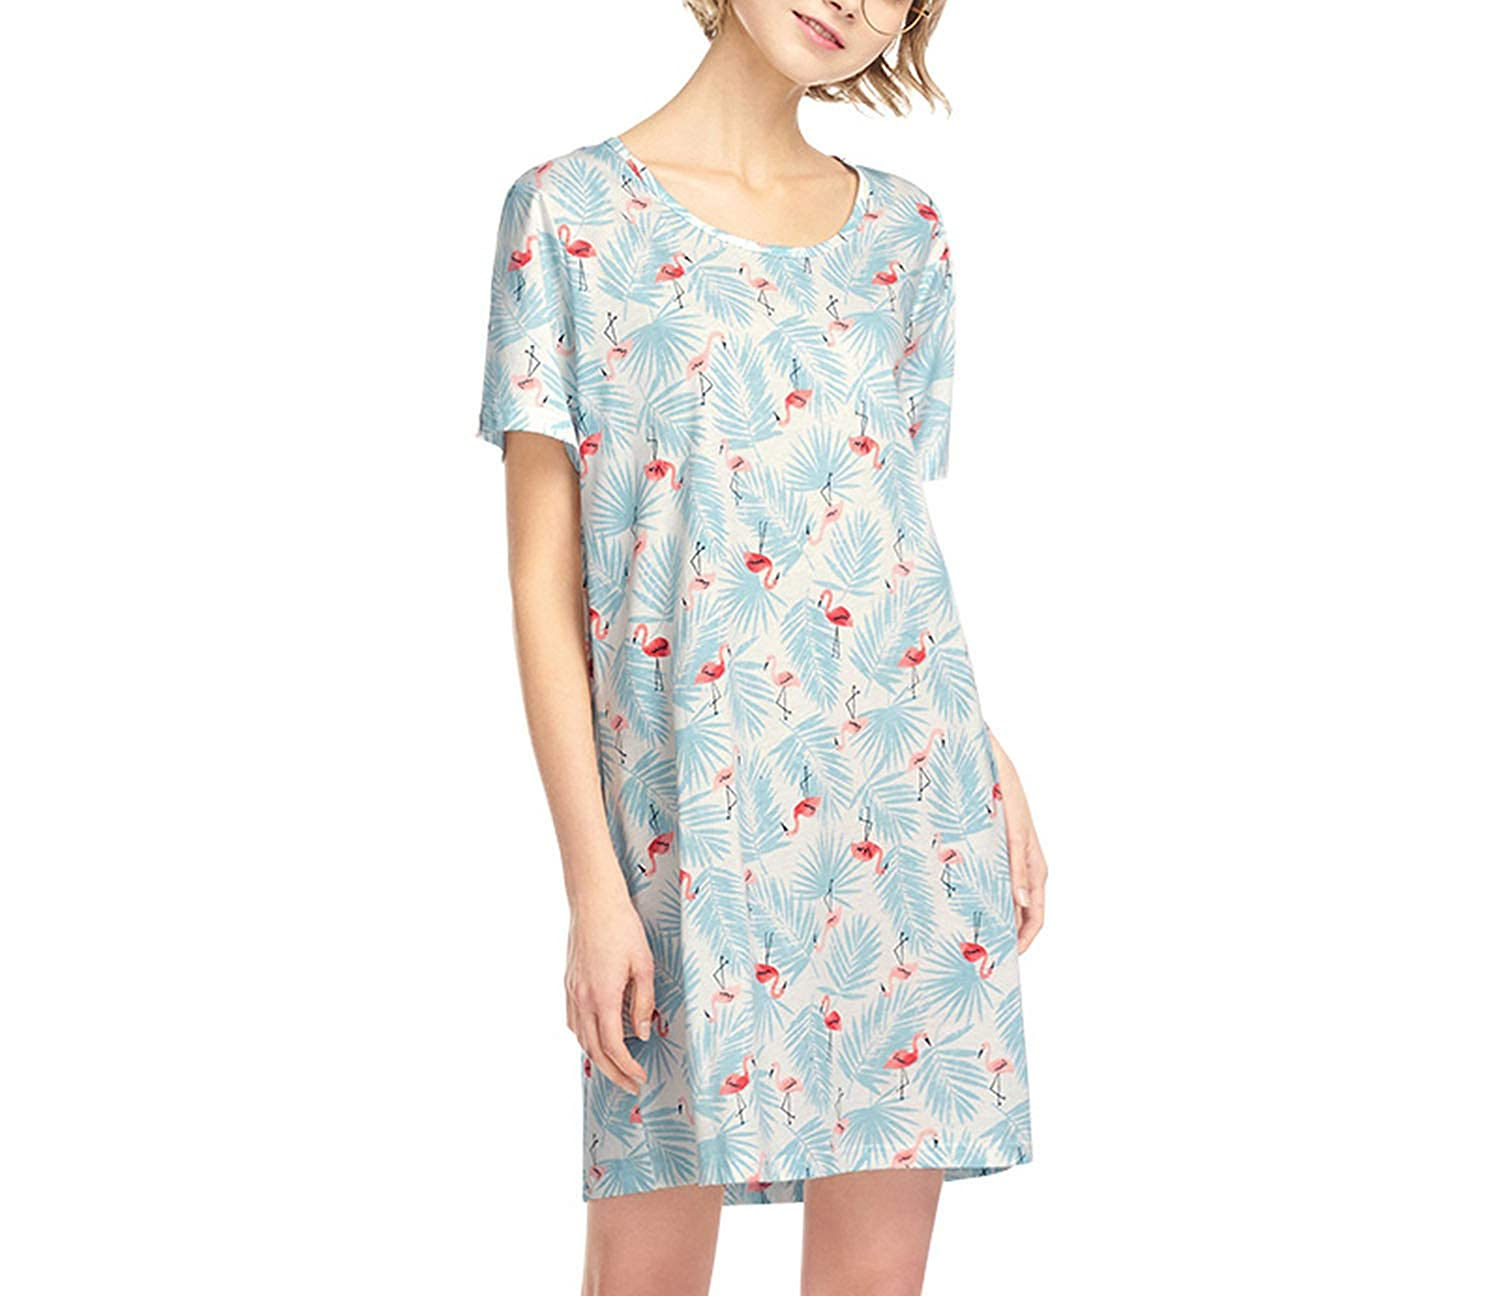 Flamingo Blouses HeatTracing Womens Sexy Sleepshirts Nightdress Cotton Printed Fashion Straps Cute Floral Casual Camisole